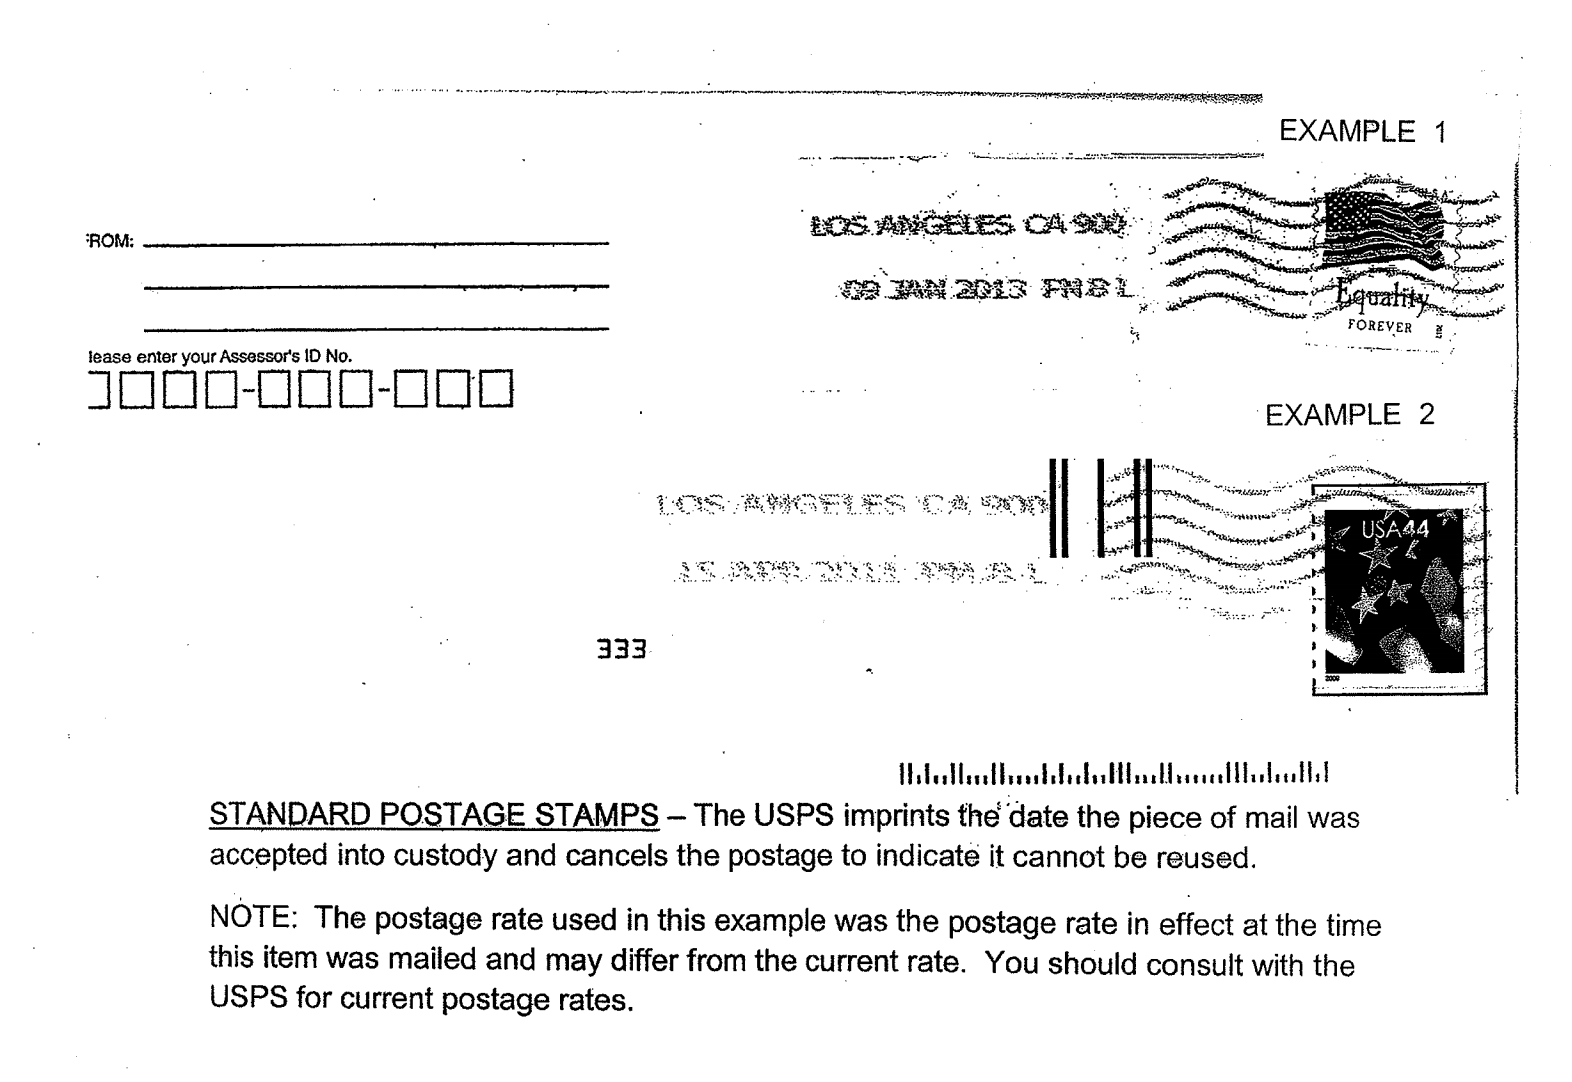 Standard Postage Stamps example.